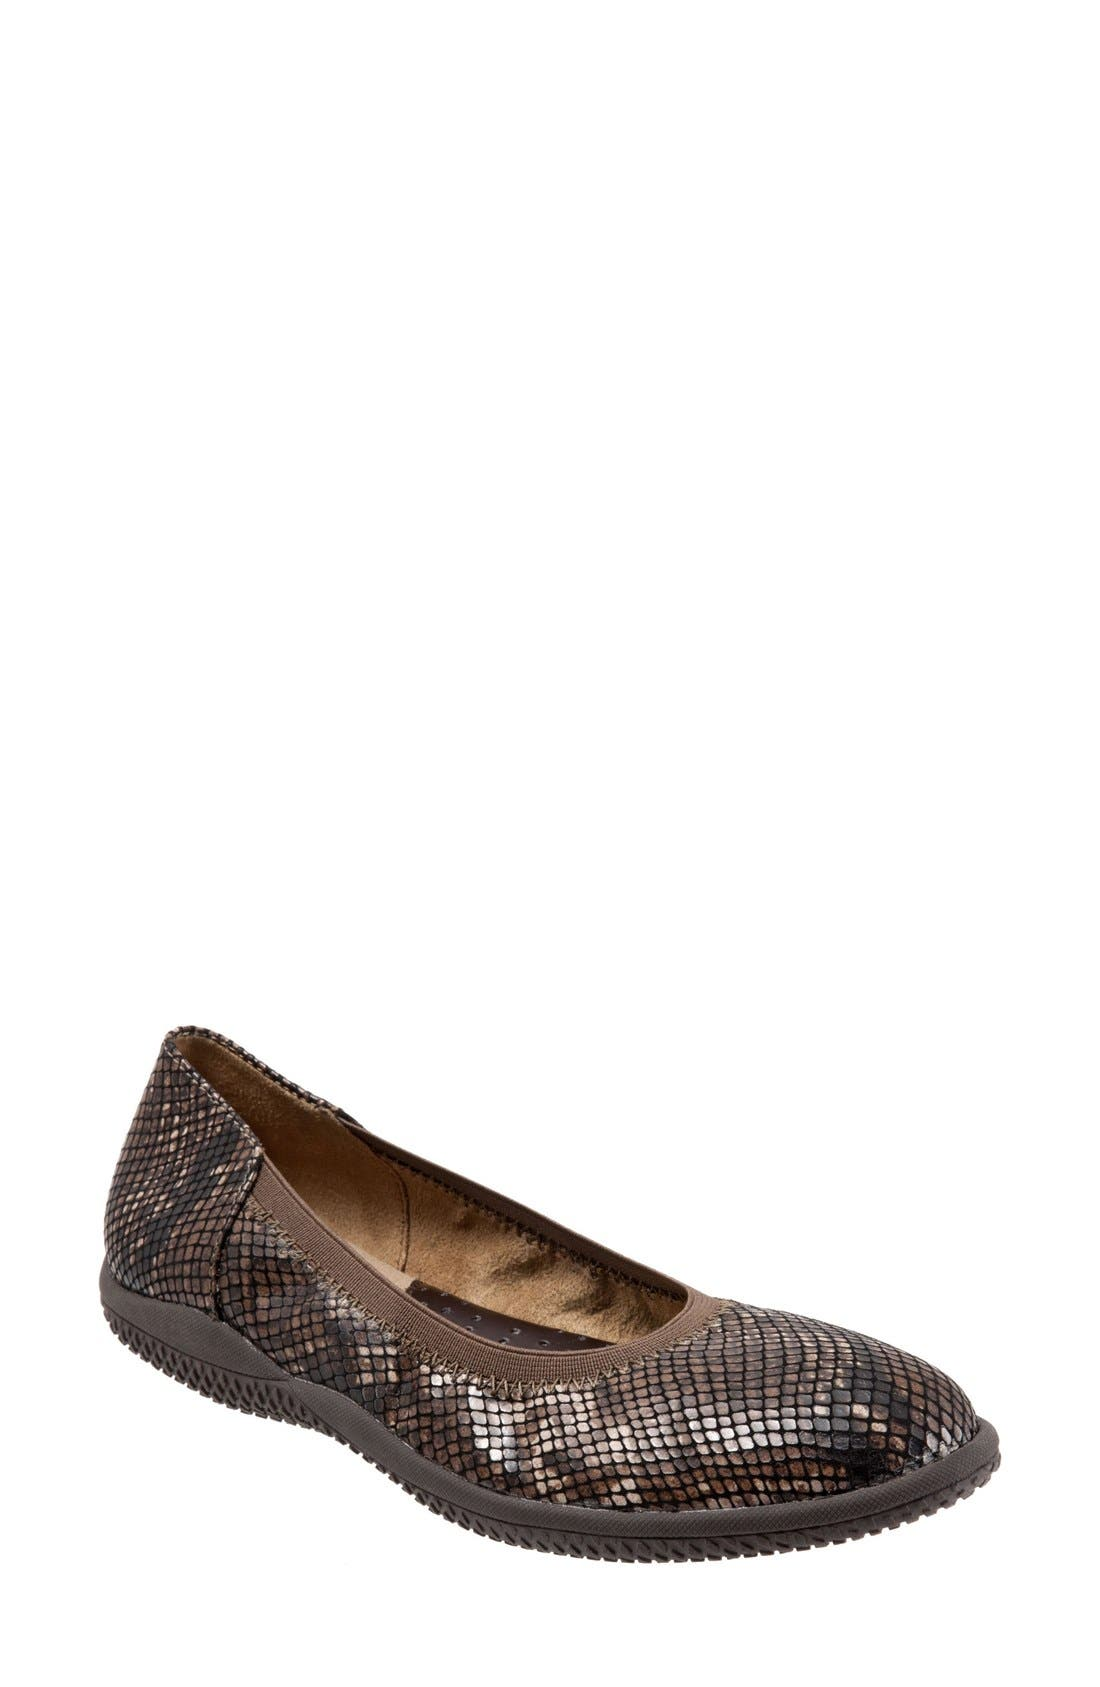 'Hampshire' Dot Perforated Ballet Flat,                             Main thumbnail 1, color,                             BROWN PYTHON PRINT LEATHER